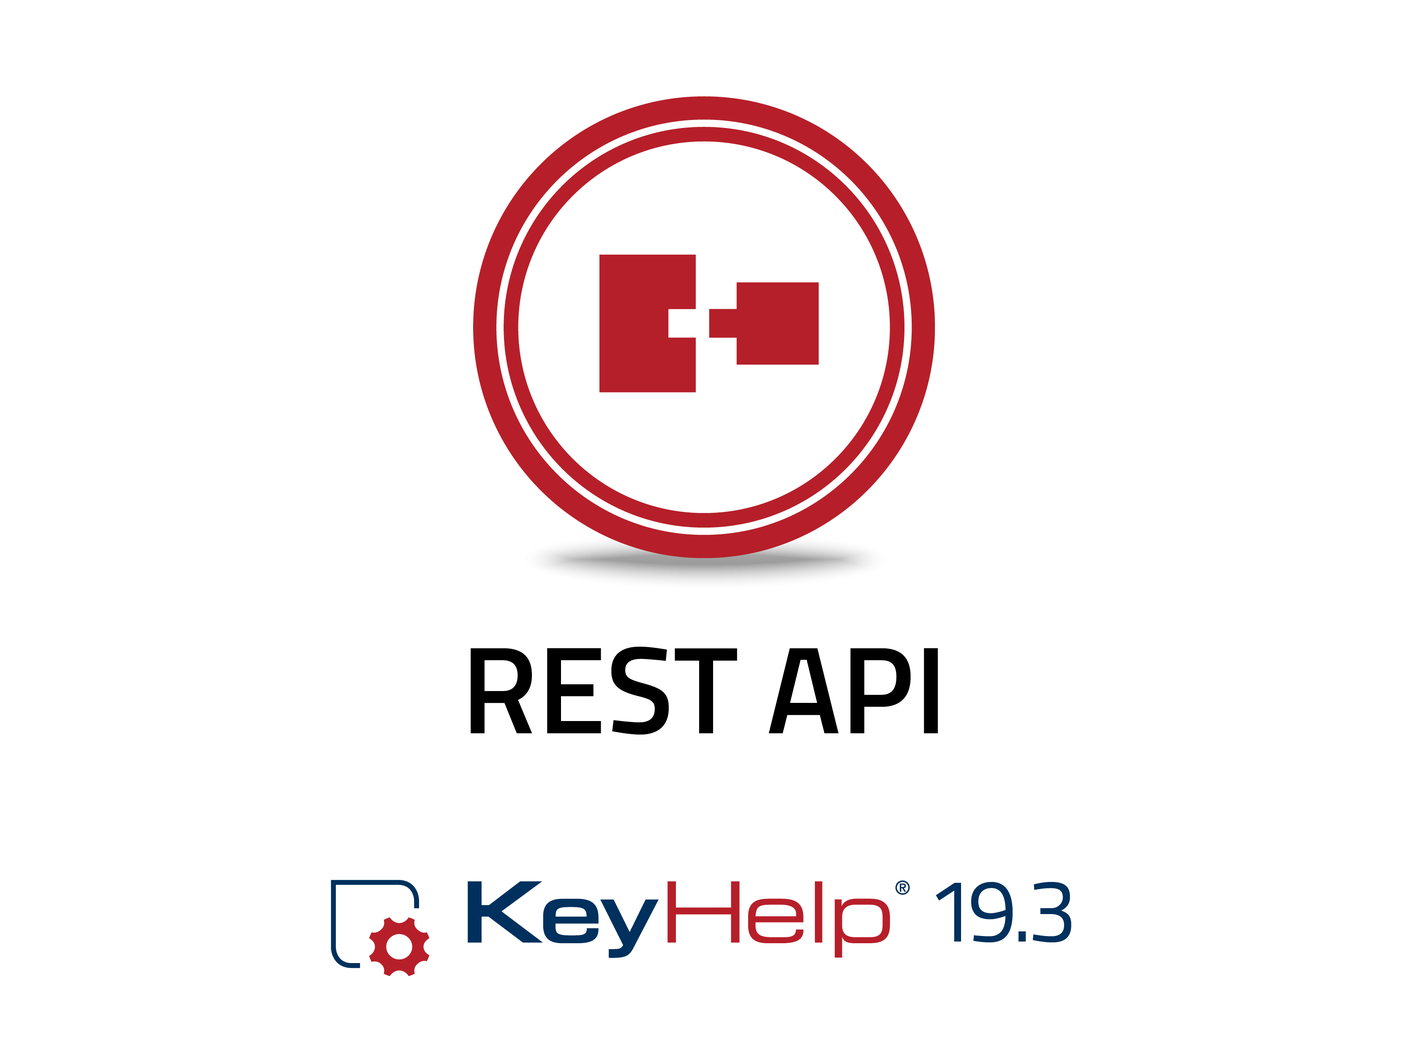 KeyHelp 19.3 with REST API released